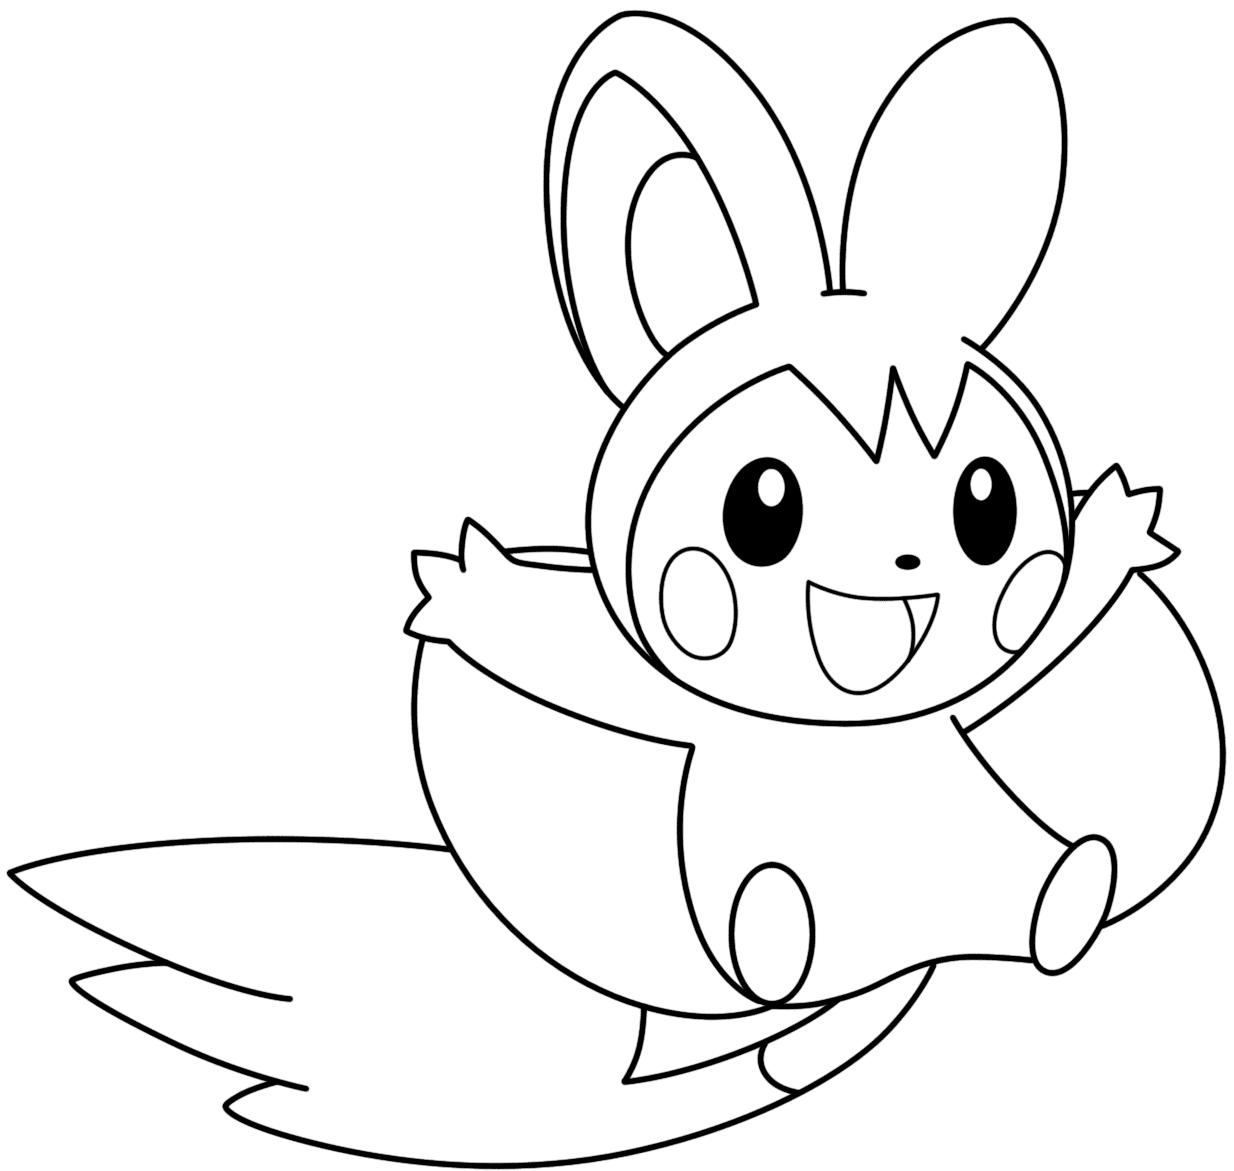 Pin by PSKPedia.com on Pokemon Coloring Pages (With images ...